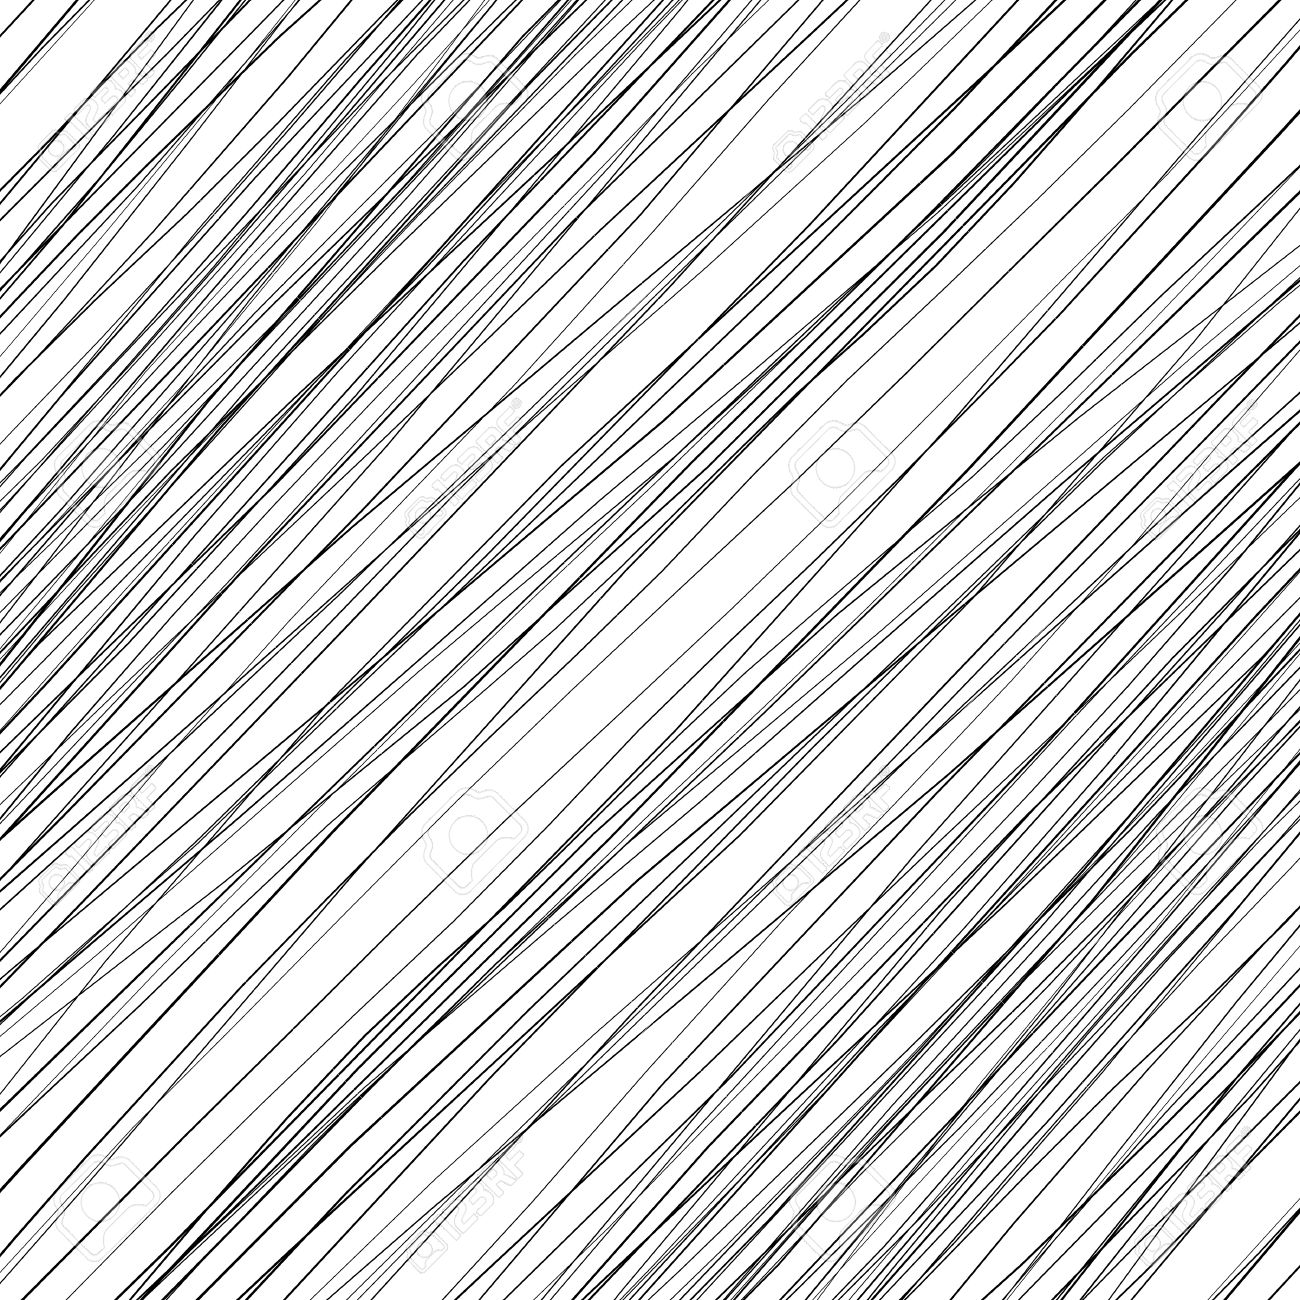 1300x1300 Lines Its Not Hair, It's A Wooden Floor Tile. Or Is It Points